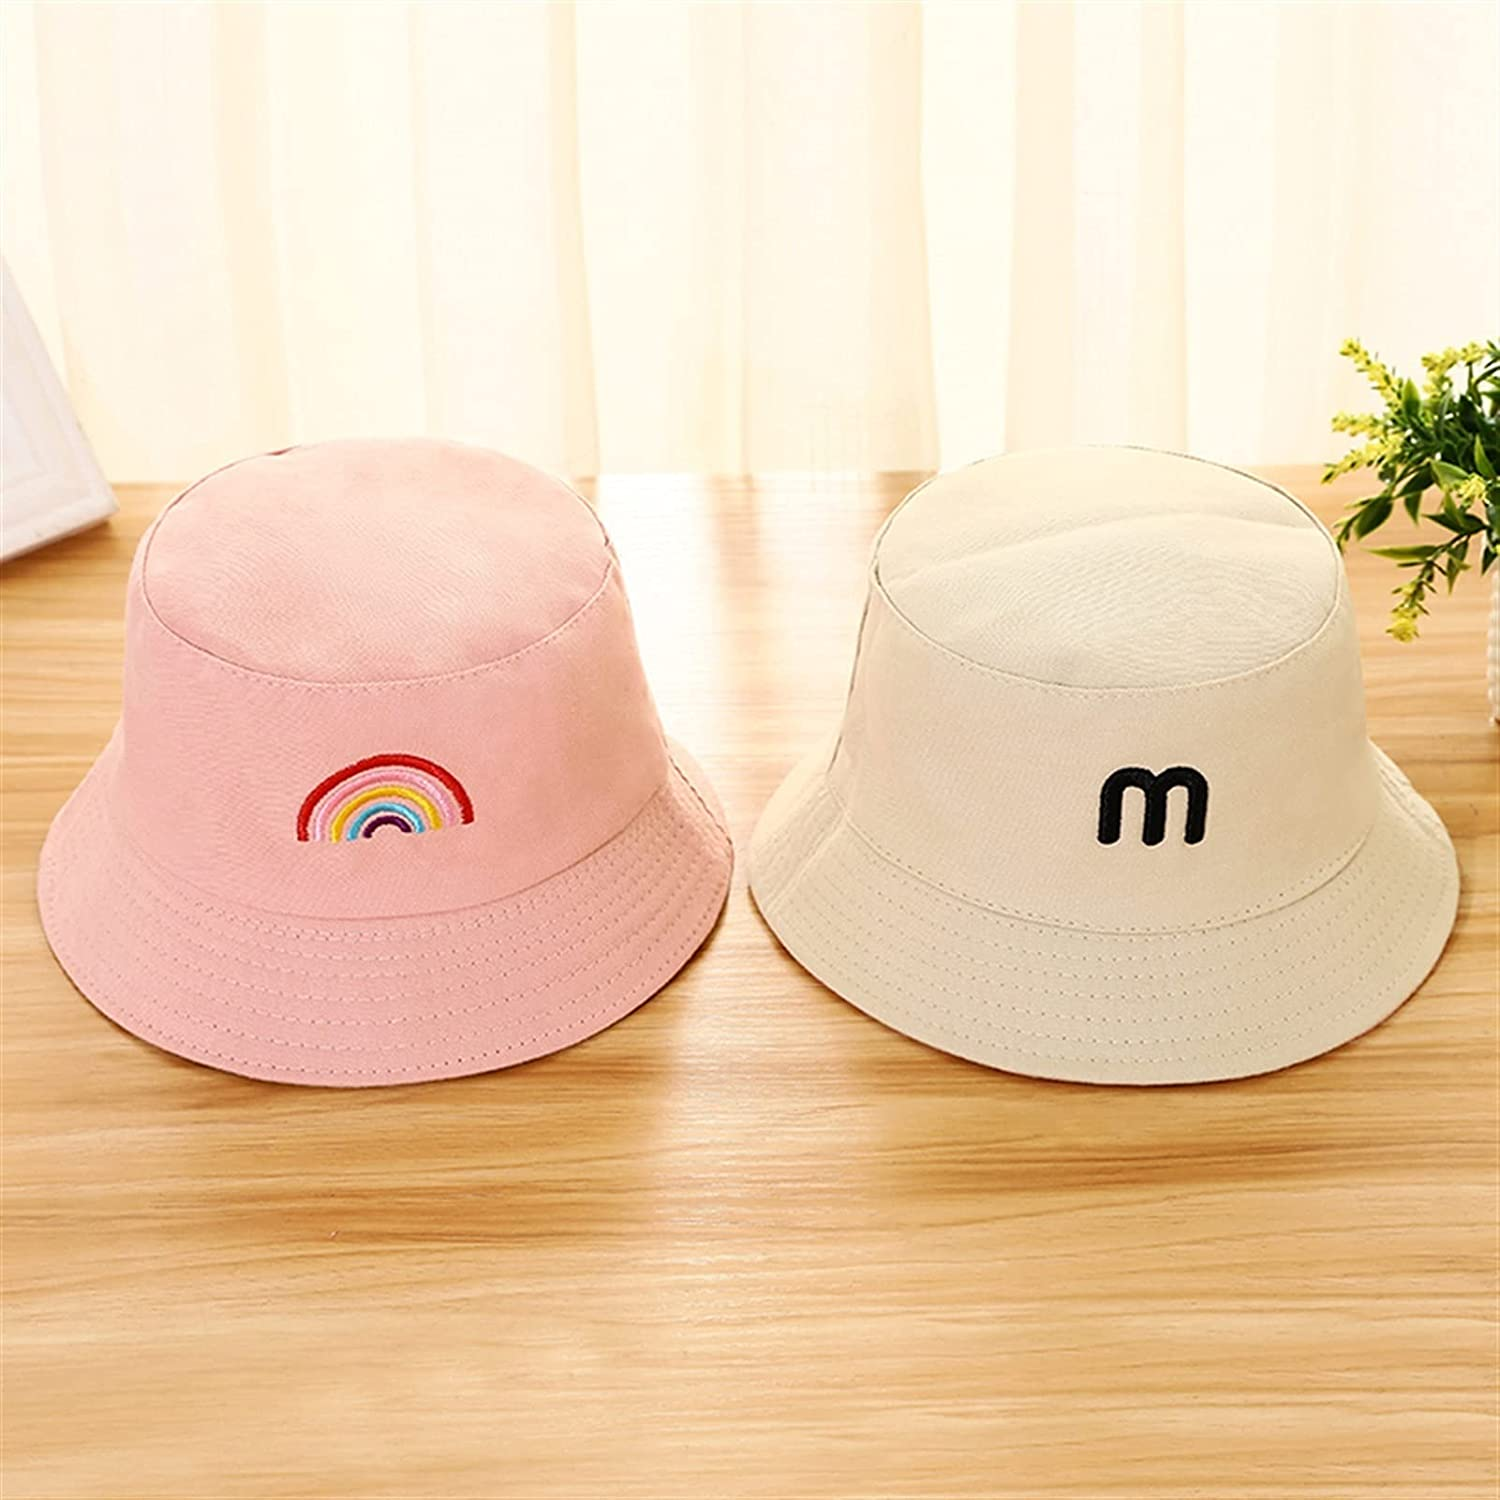 Summer Baby Hat Double Sided Embroidery Rainbow Milwaukee Mall Bucket Under blast sales B for